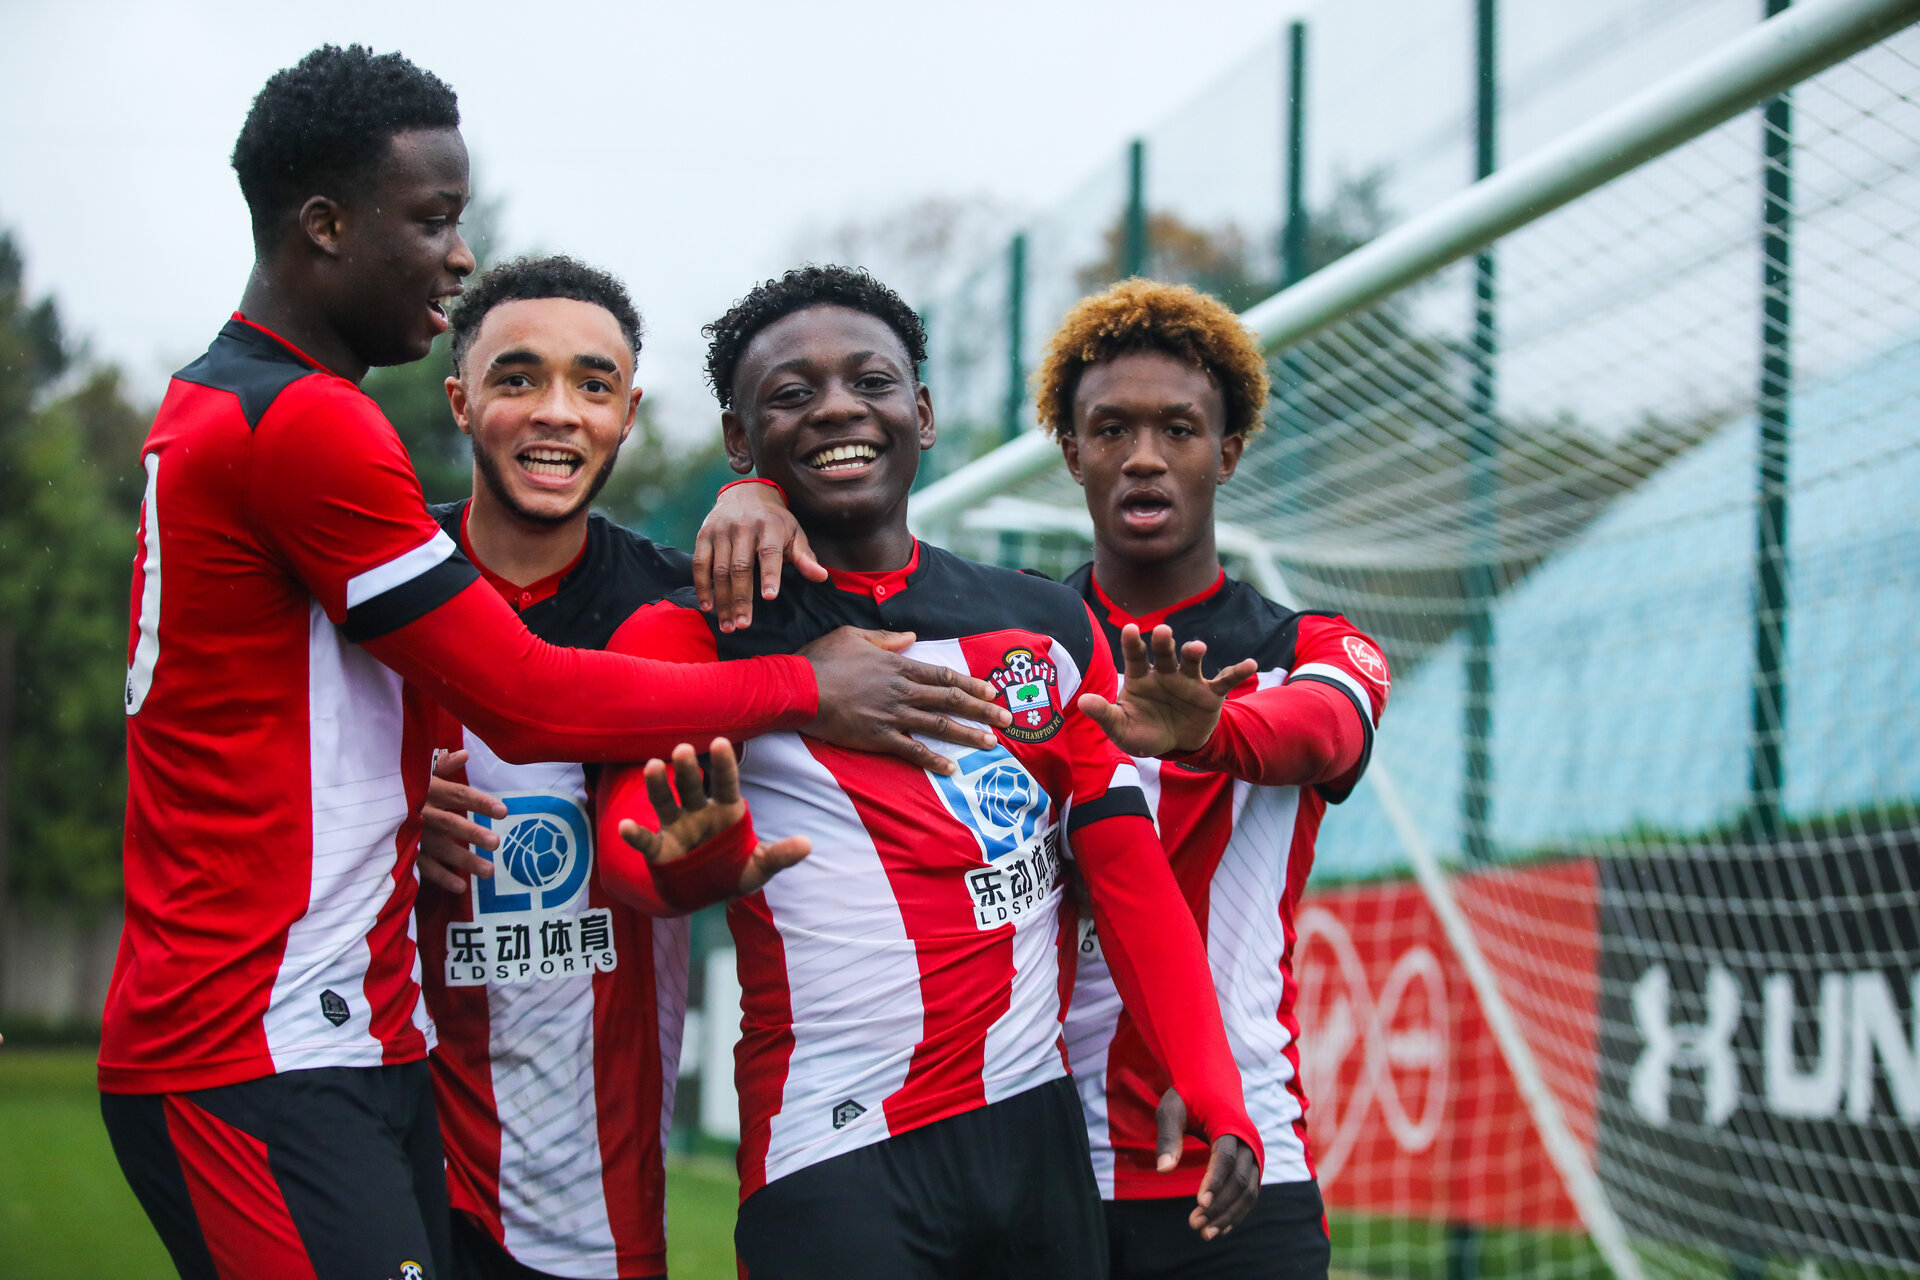 SOUTHAMPTON, ENGLAND - OCTOBER 26: Kazeem Olaigbe of Southampton FC (Centre-Right) celebrates scoring Southampton's first goal with Rio Glean (R), Jayden Smith (Centre-Left), and Roland Idowu (L) of Southampton FC during the Under 18s Premier League Cup match between Southampton FC and Swansea City at the Staplewood Campus on October 26, 2019 in Southampton, England